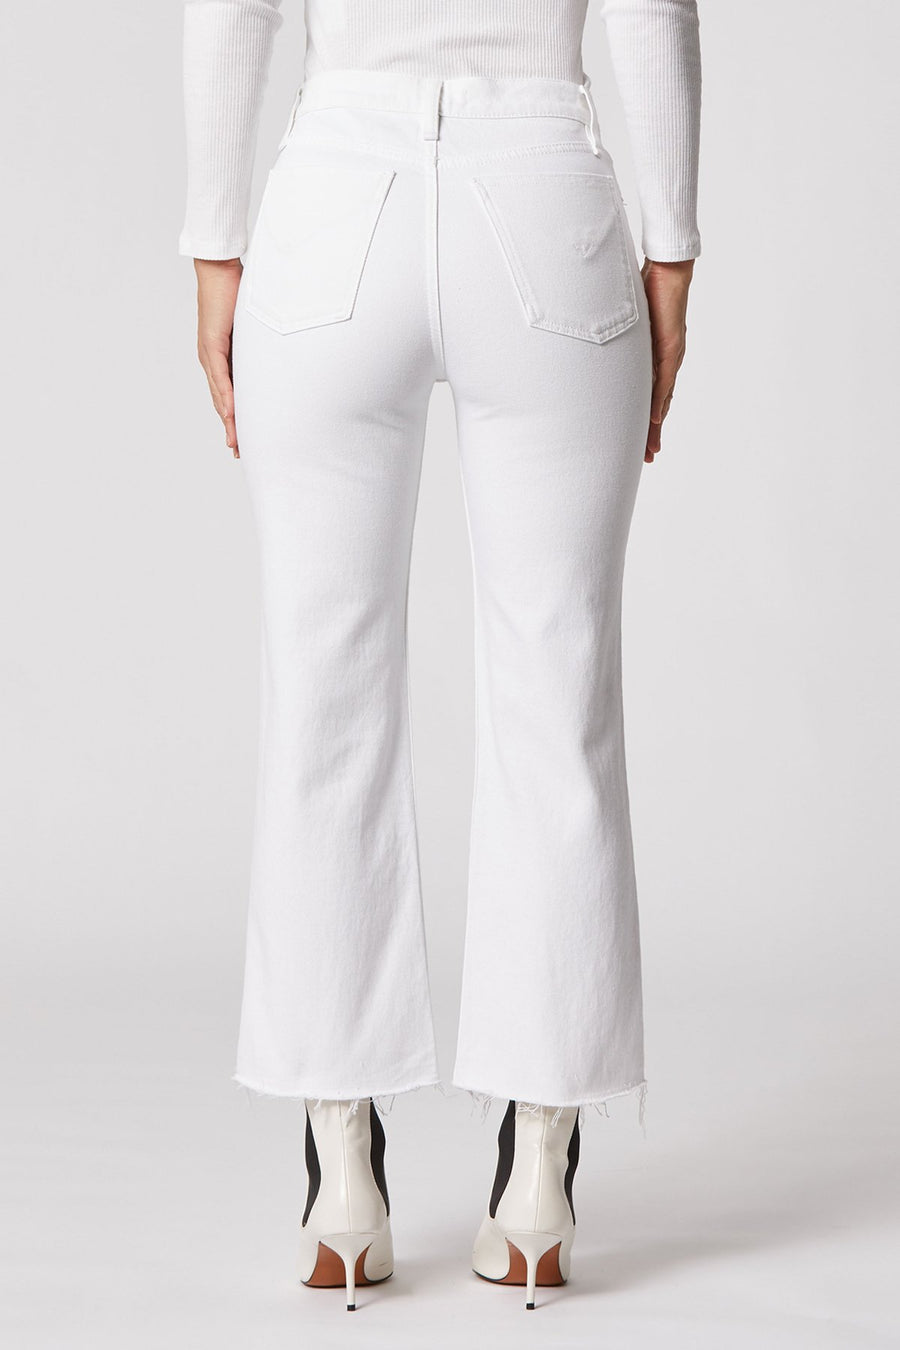 Remi High-Rise Straight Cropped Jean - White - ShopMadisonbelle